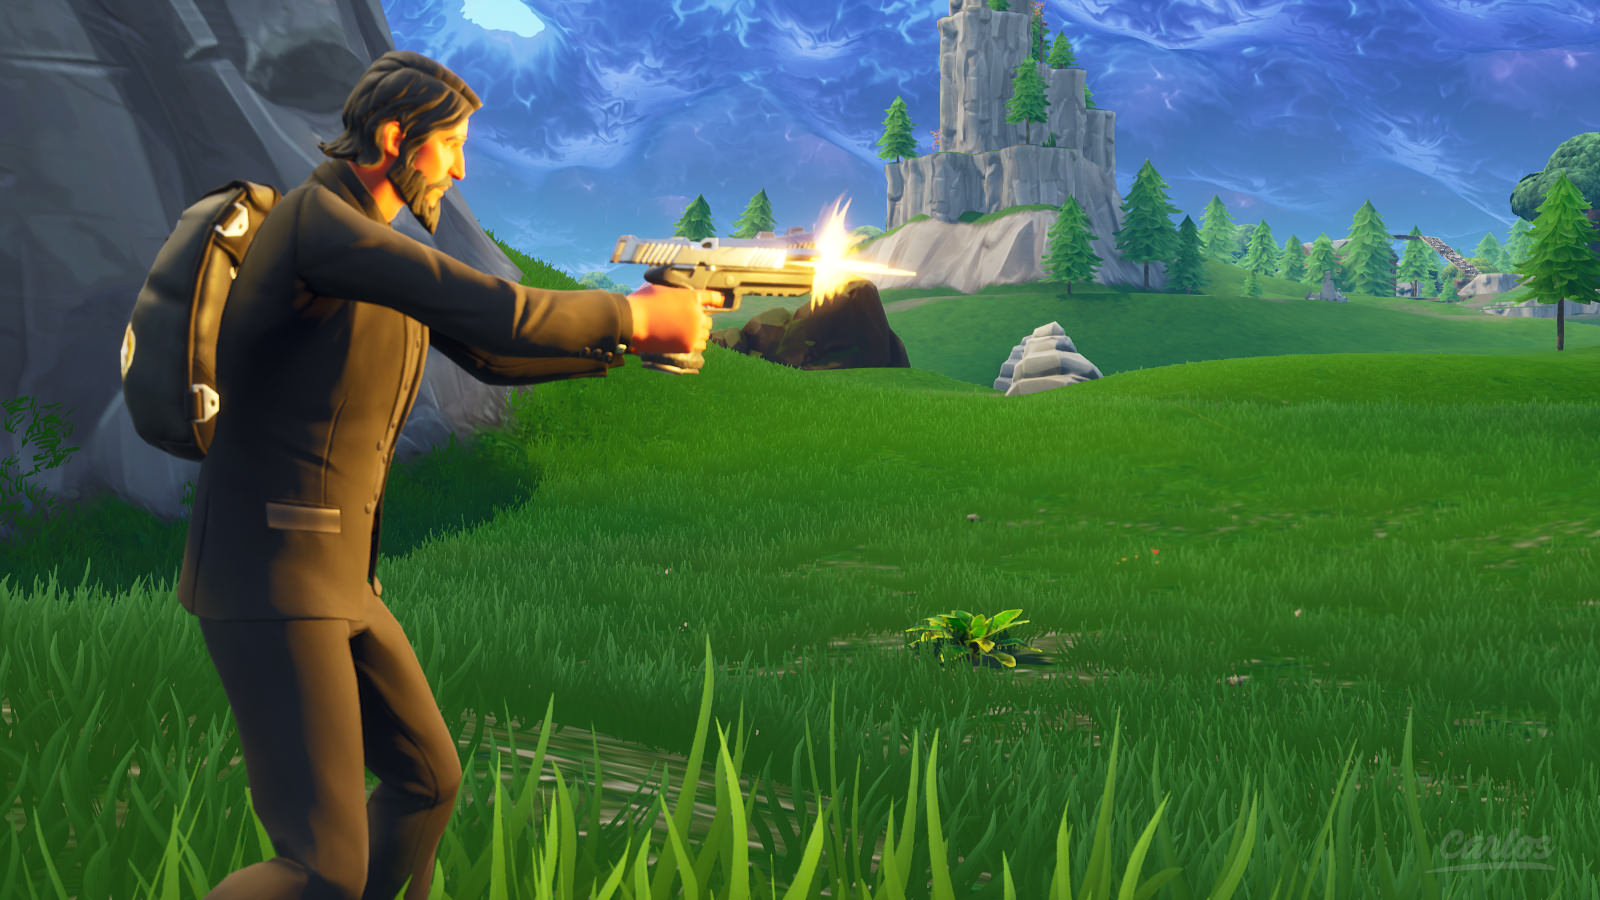 John Wick Fortnite In Game 1600x900 Wallpaper Teahub Io